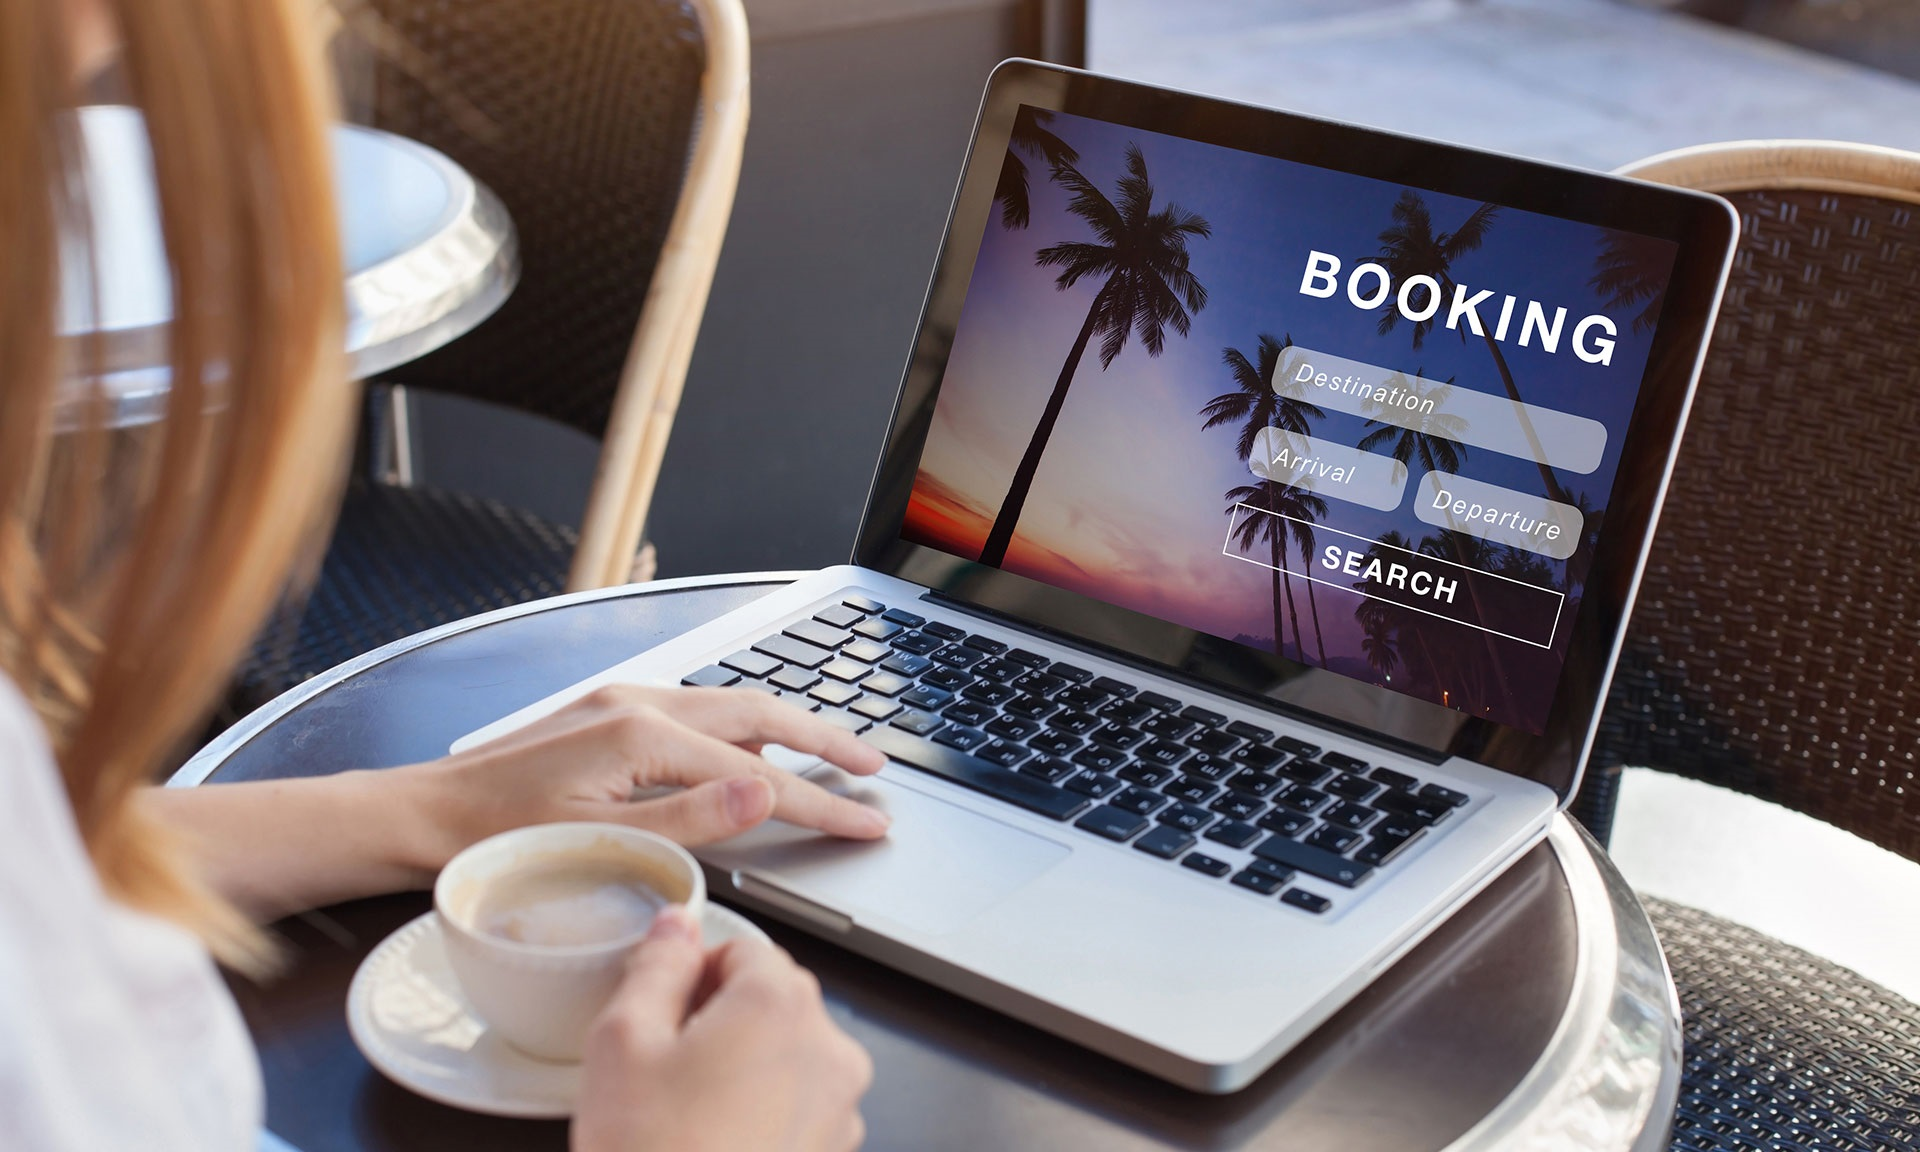 When should I book a holiday? This summer or wait until 2021?